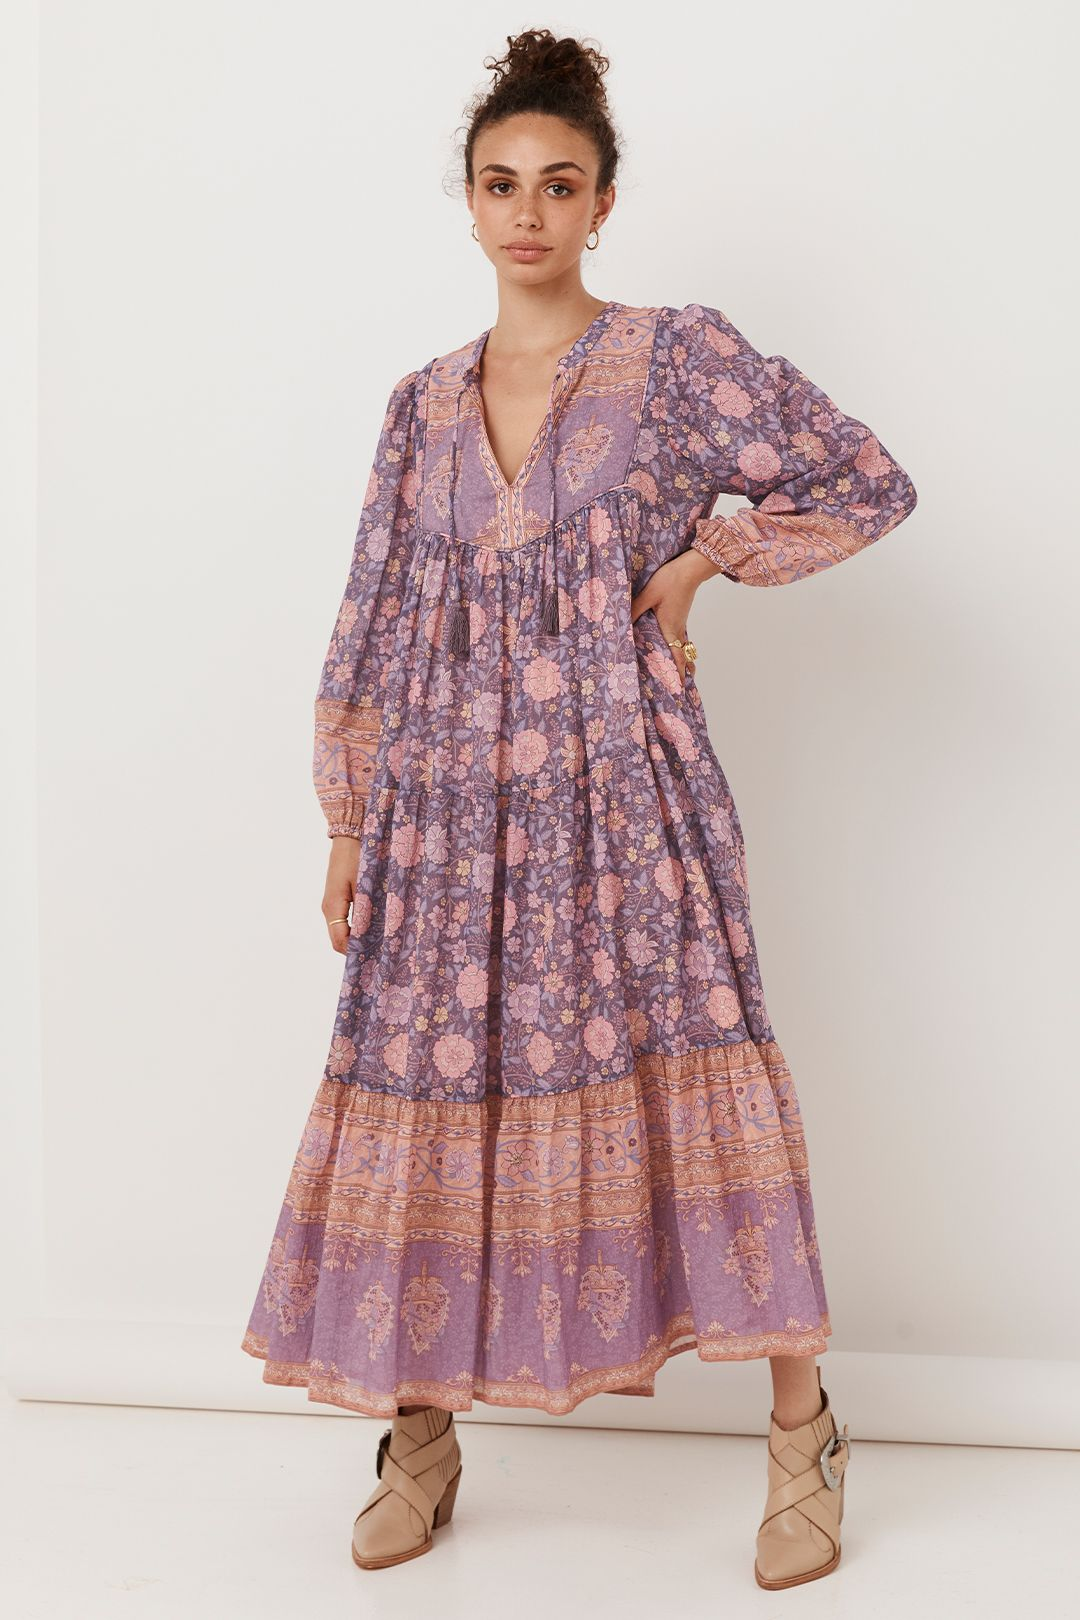 Spell Love Story Gown Royal Lilac Paisley